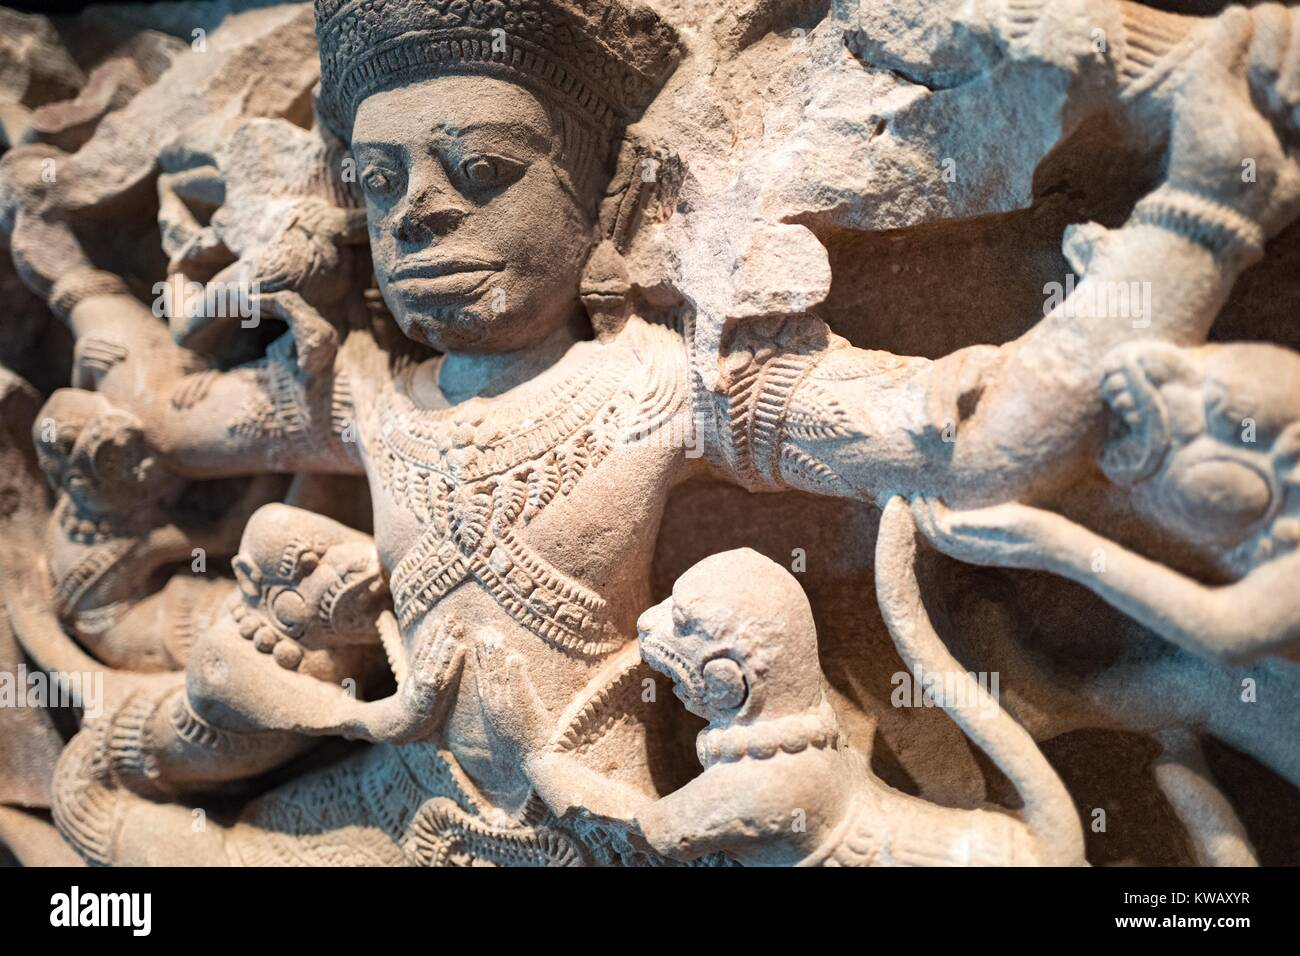 Detail view from the Indian carved stone work Kumbhakarna Battles the Monkeys, showing a scene from the epic Ramayana - Stock Image